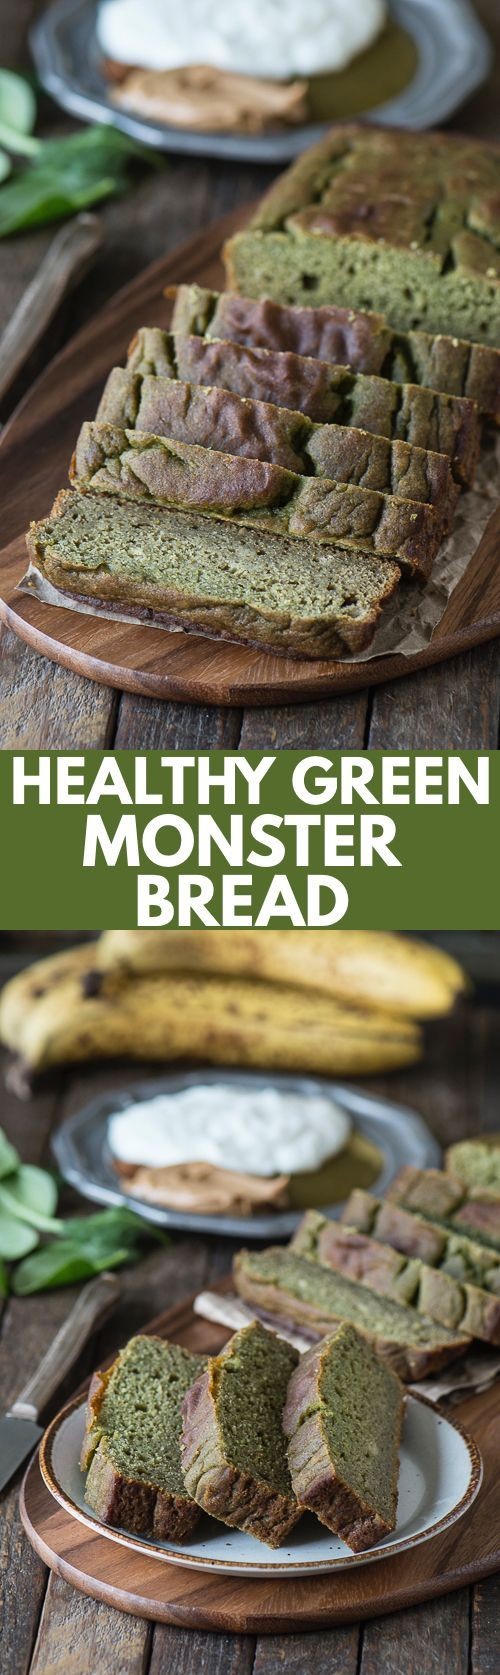 This green monster bread recipe is a healthy quick bread with no sugar, oil, or butter. Plus it has a sneaky green ingredient!